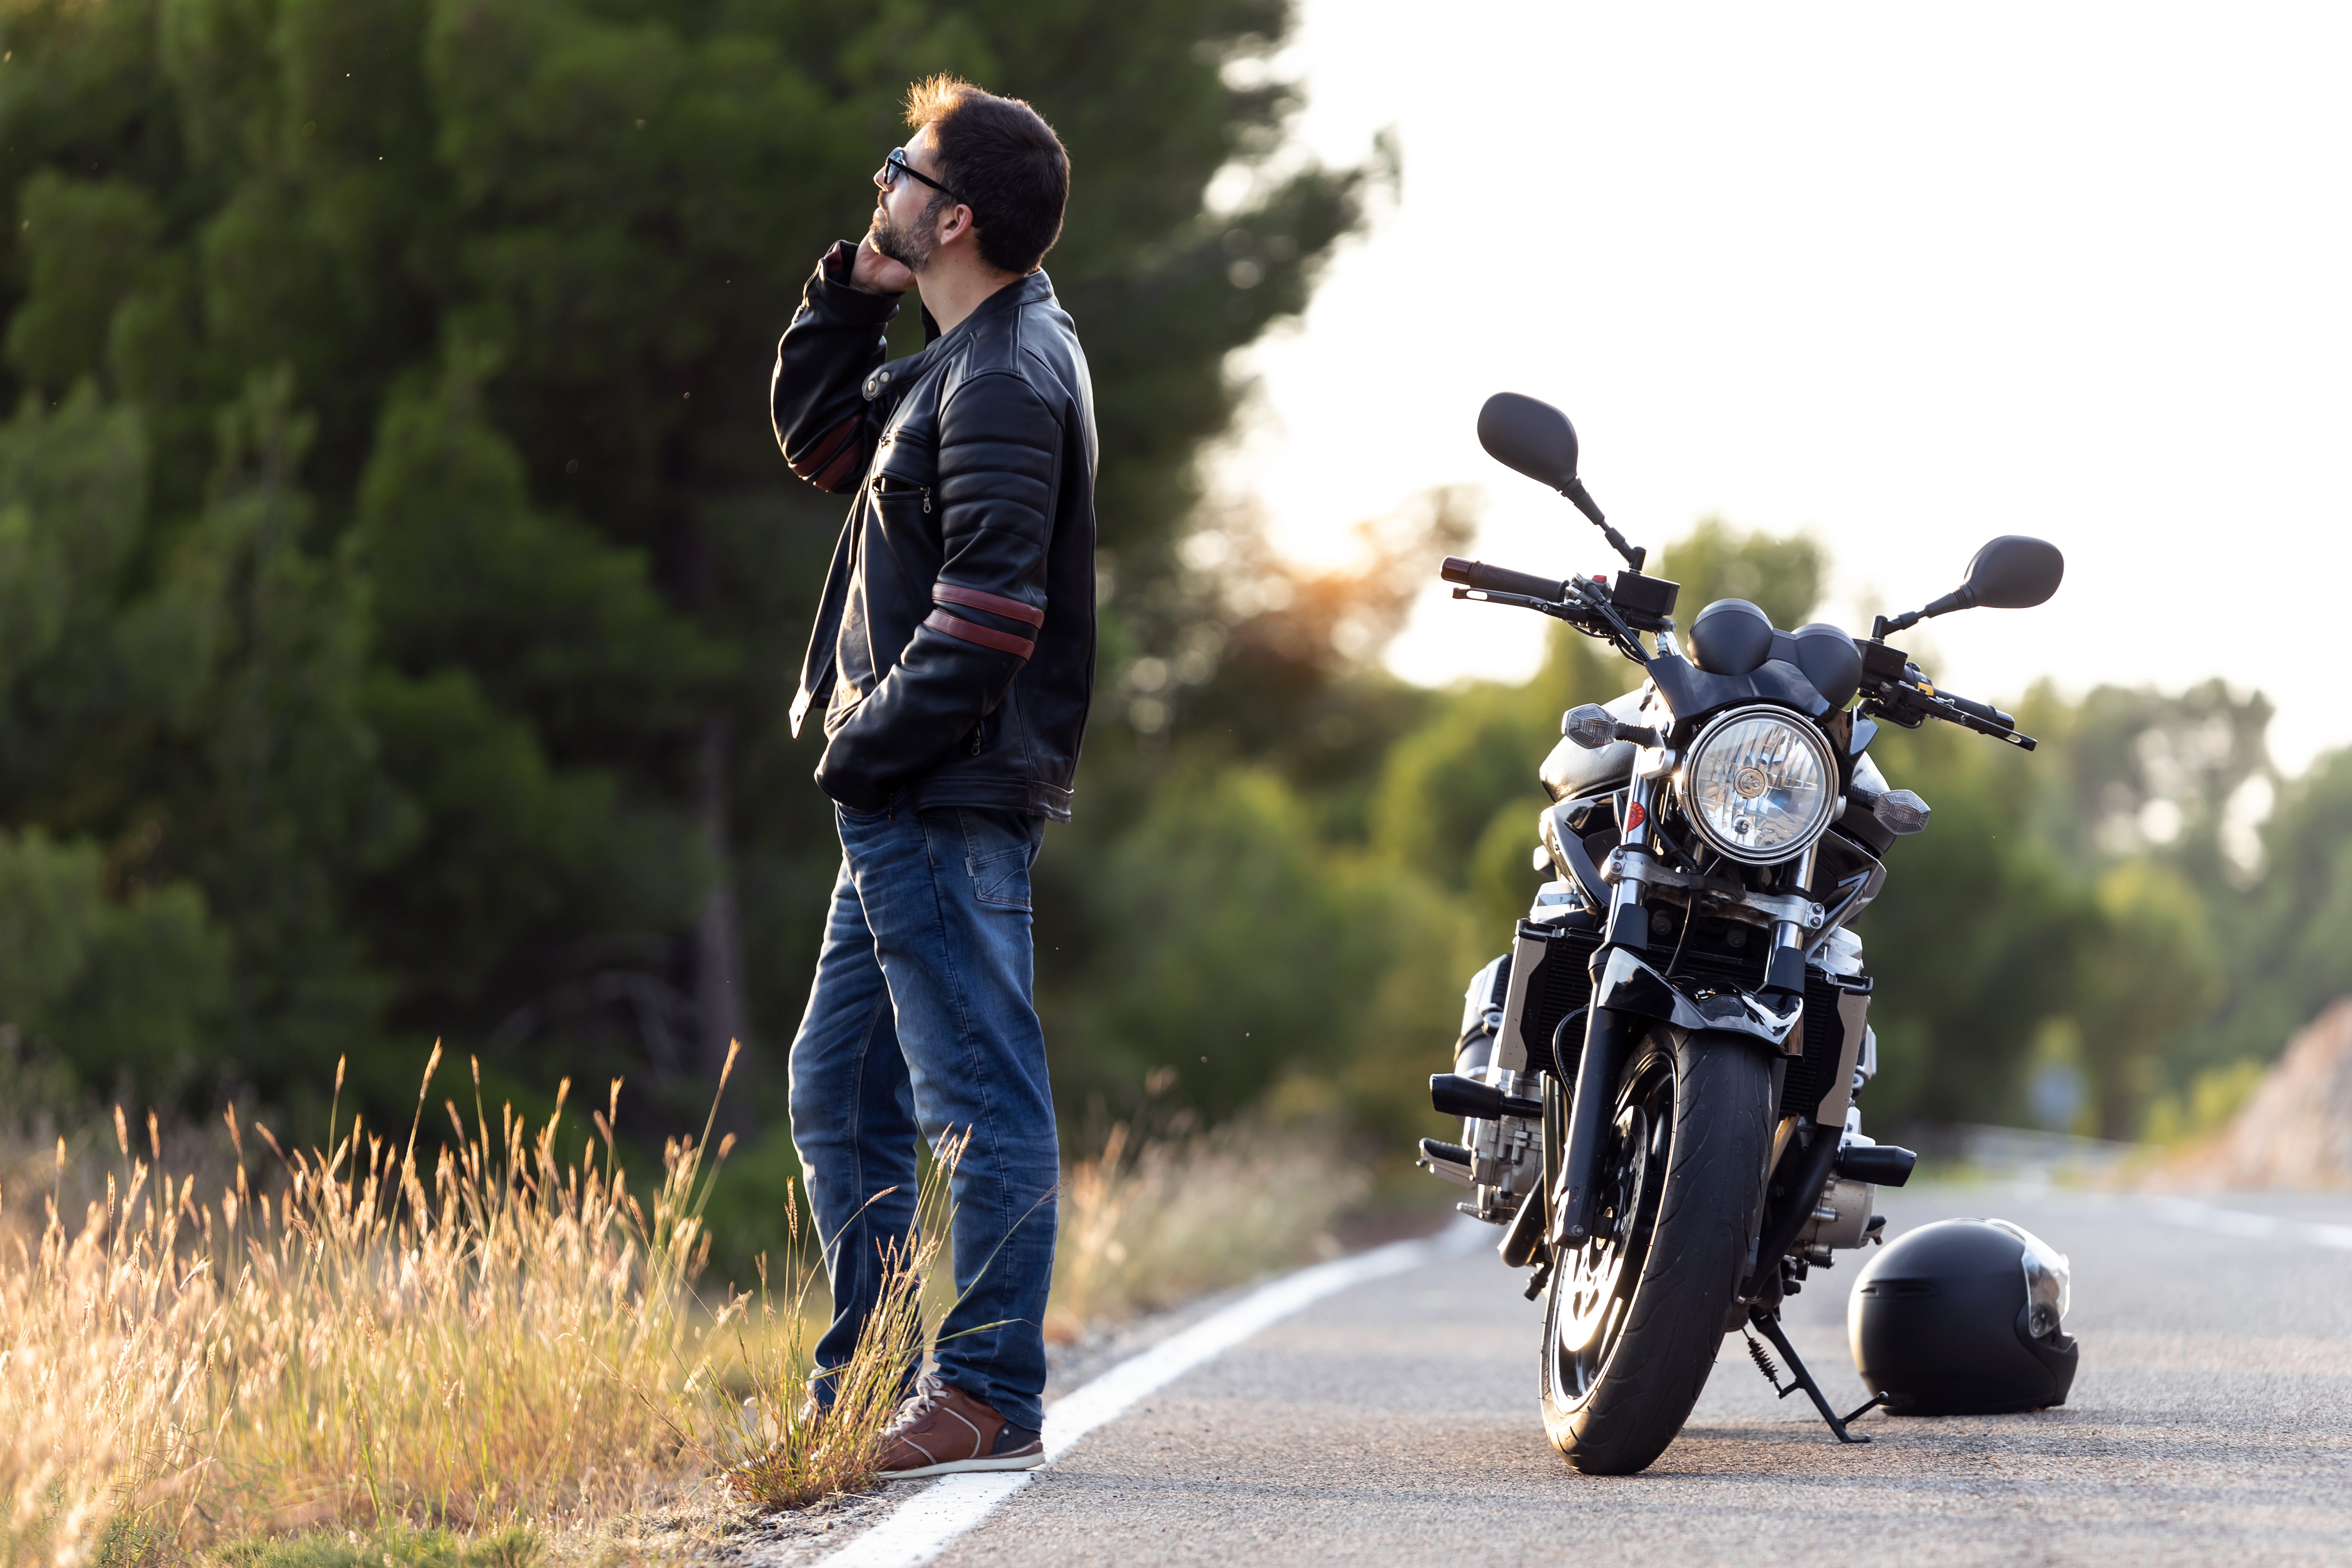 man-biker-on-the-road-F7RVNWE